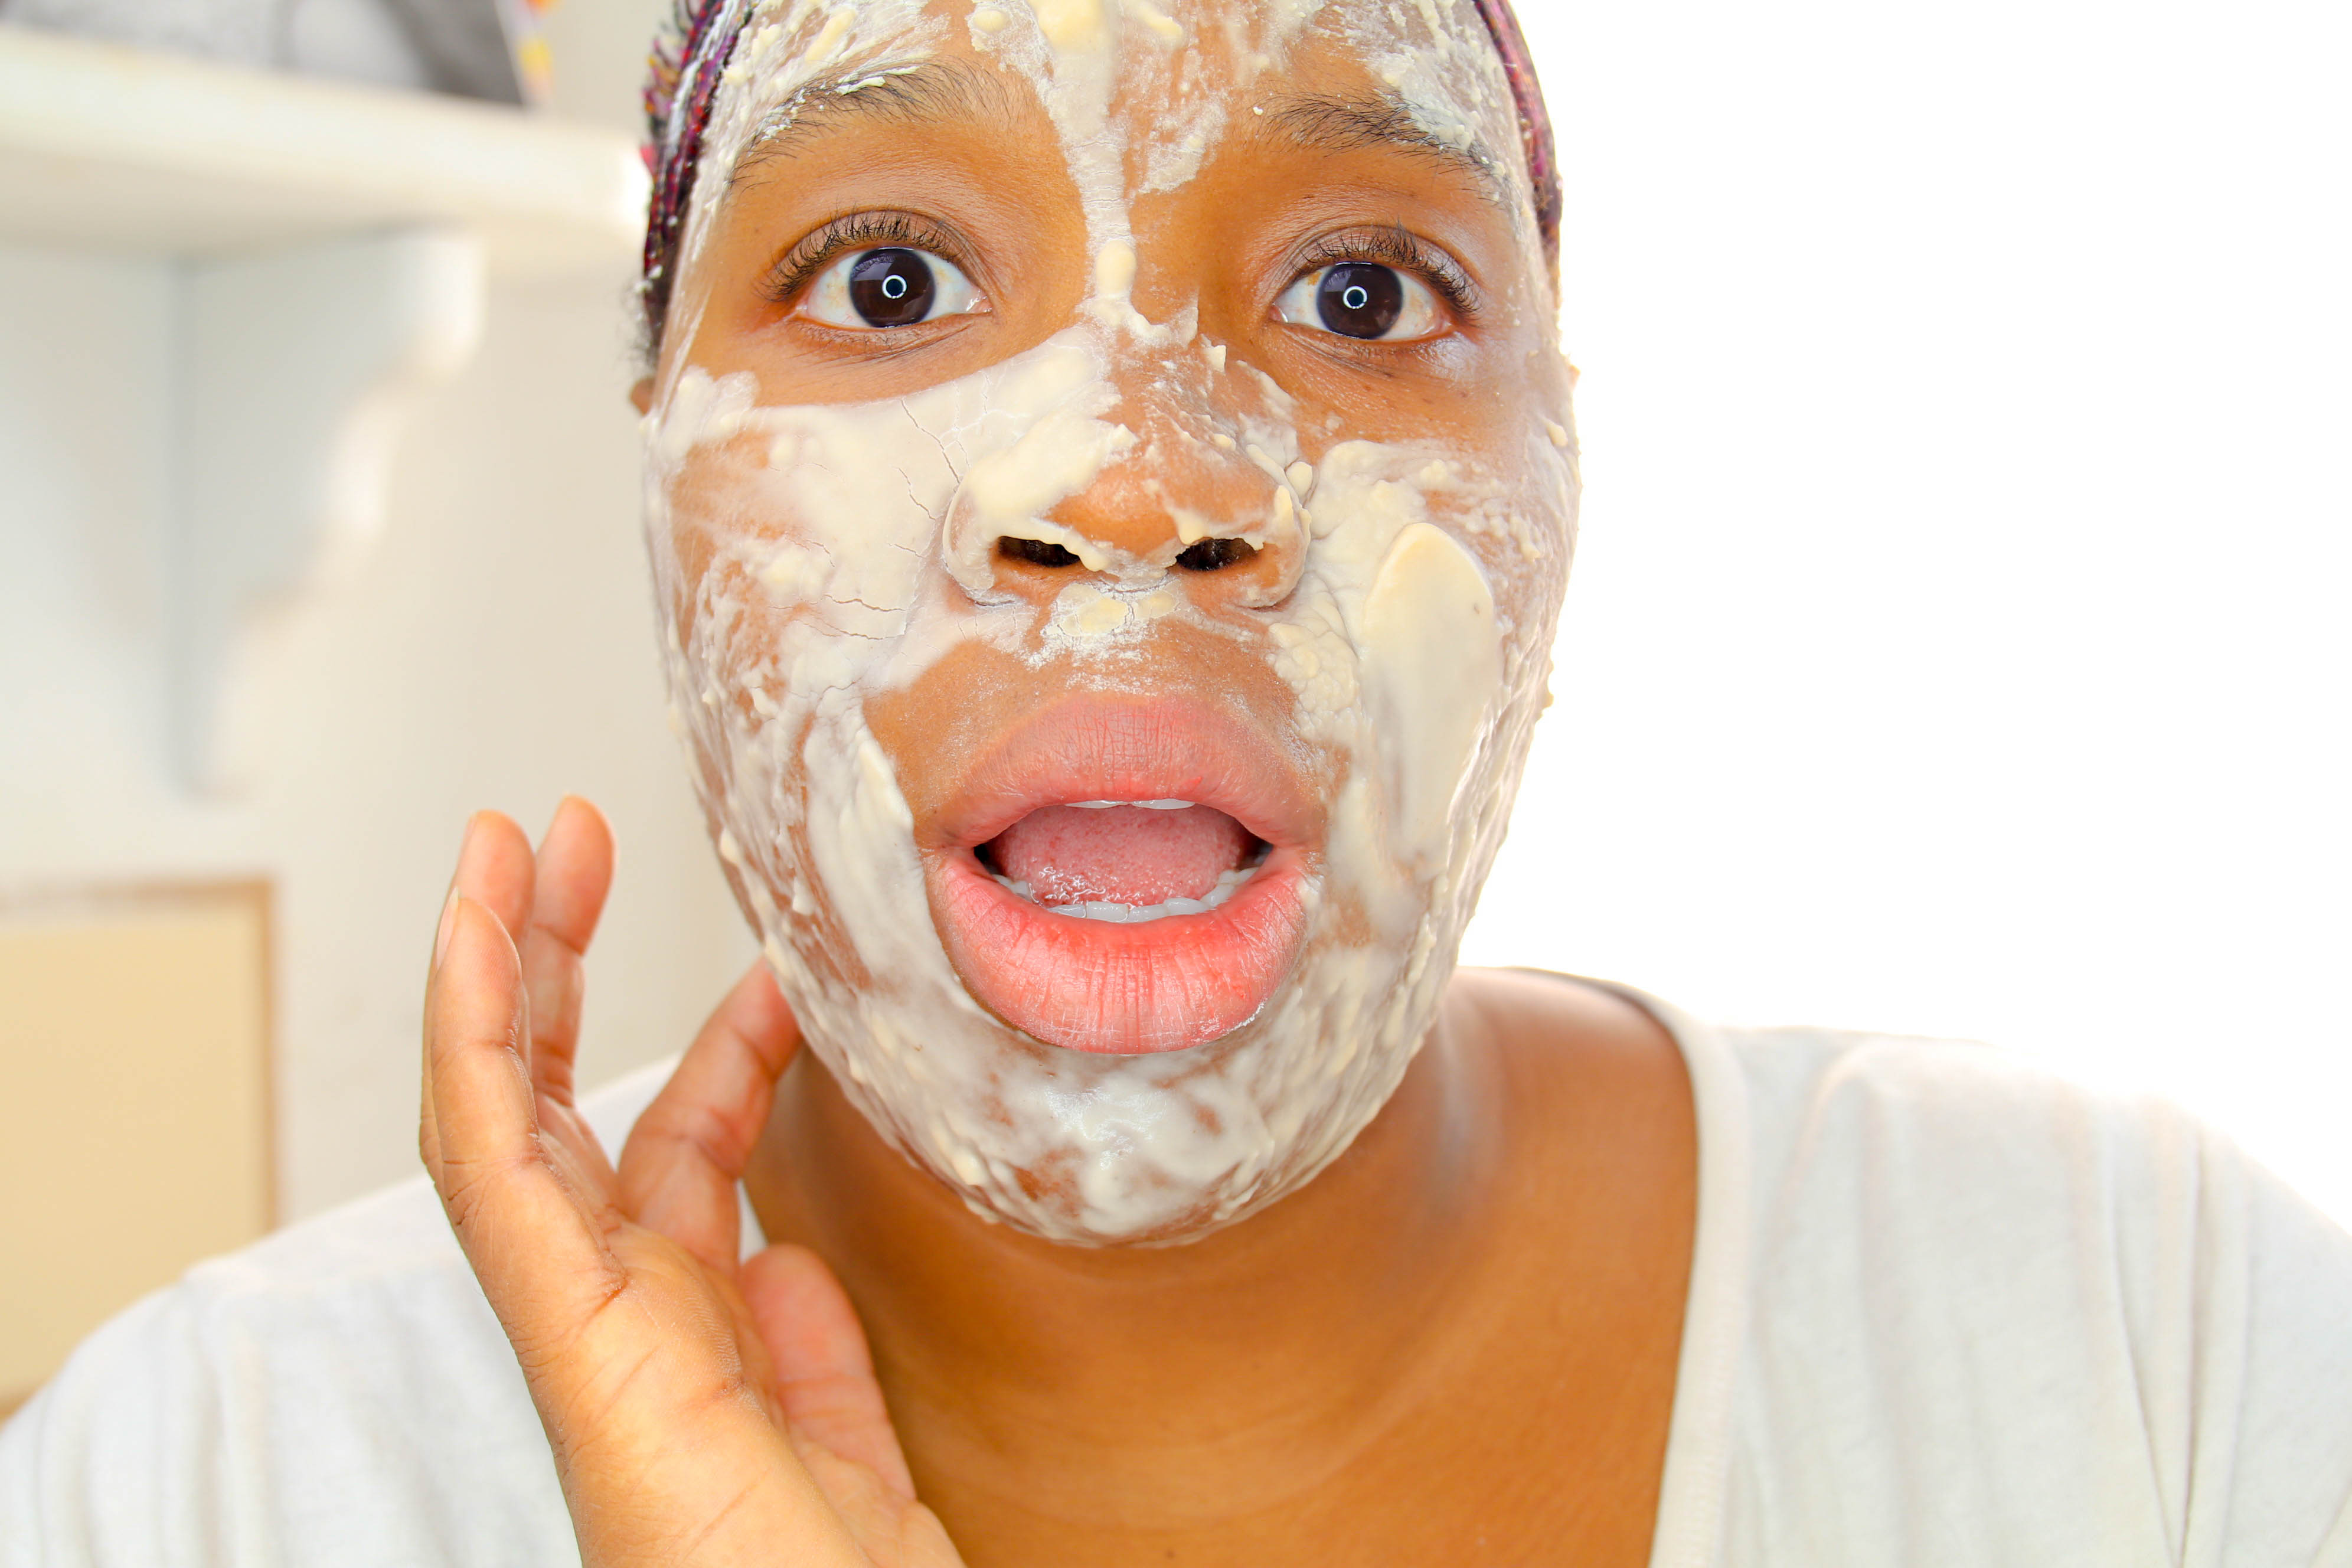 Apple Cider Vinegar And Baking Soda Face Mask Savvy Naturalista